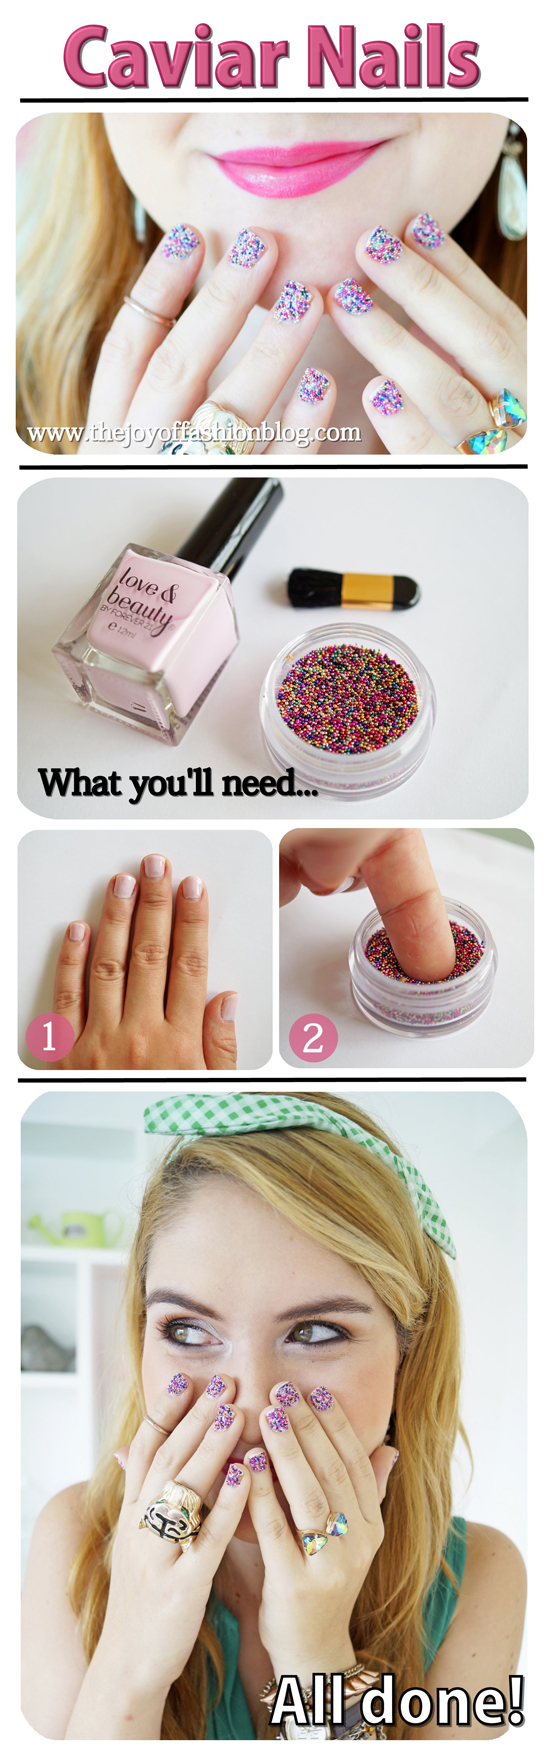 Caviar Nails Tutorial